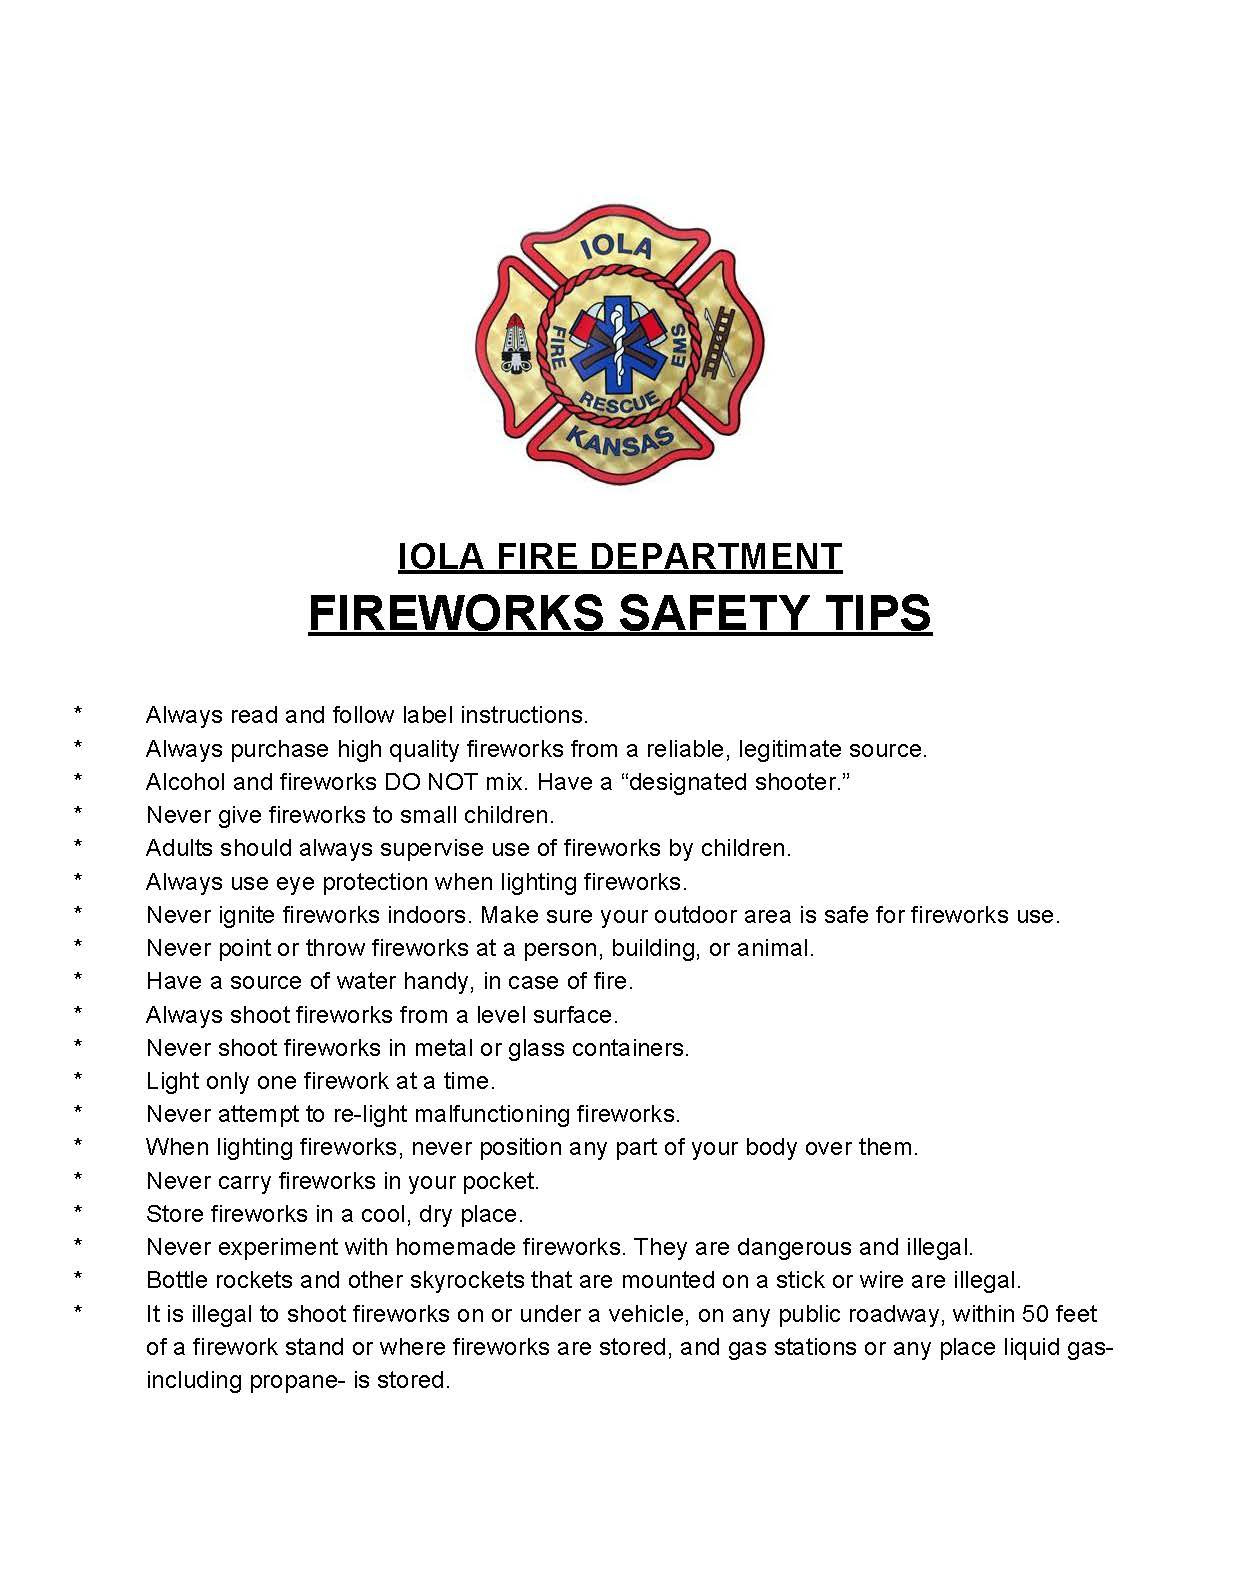 IFD Fireworks Safety Tips